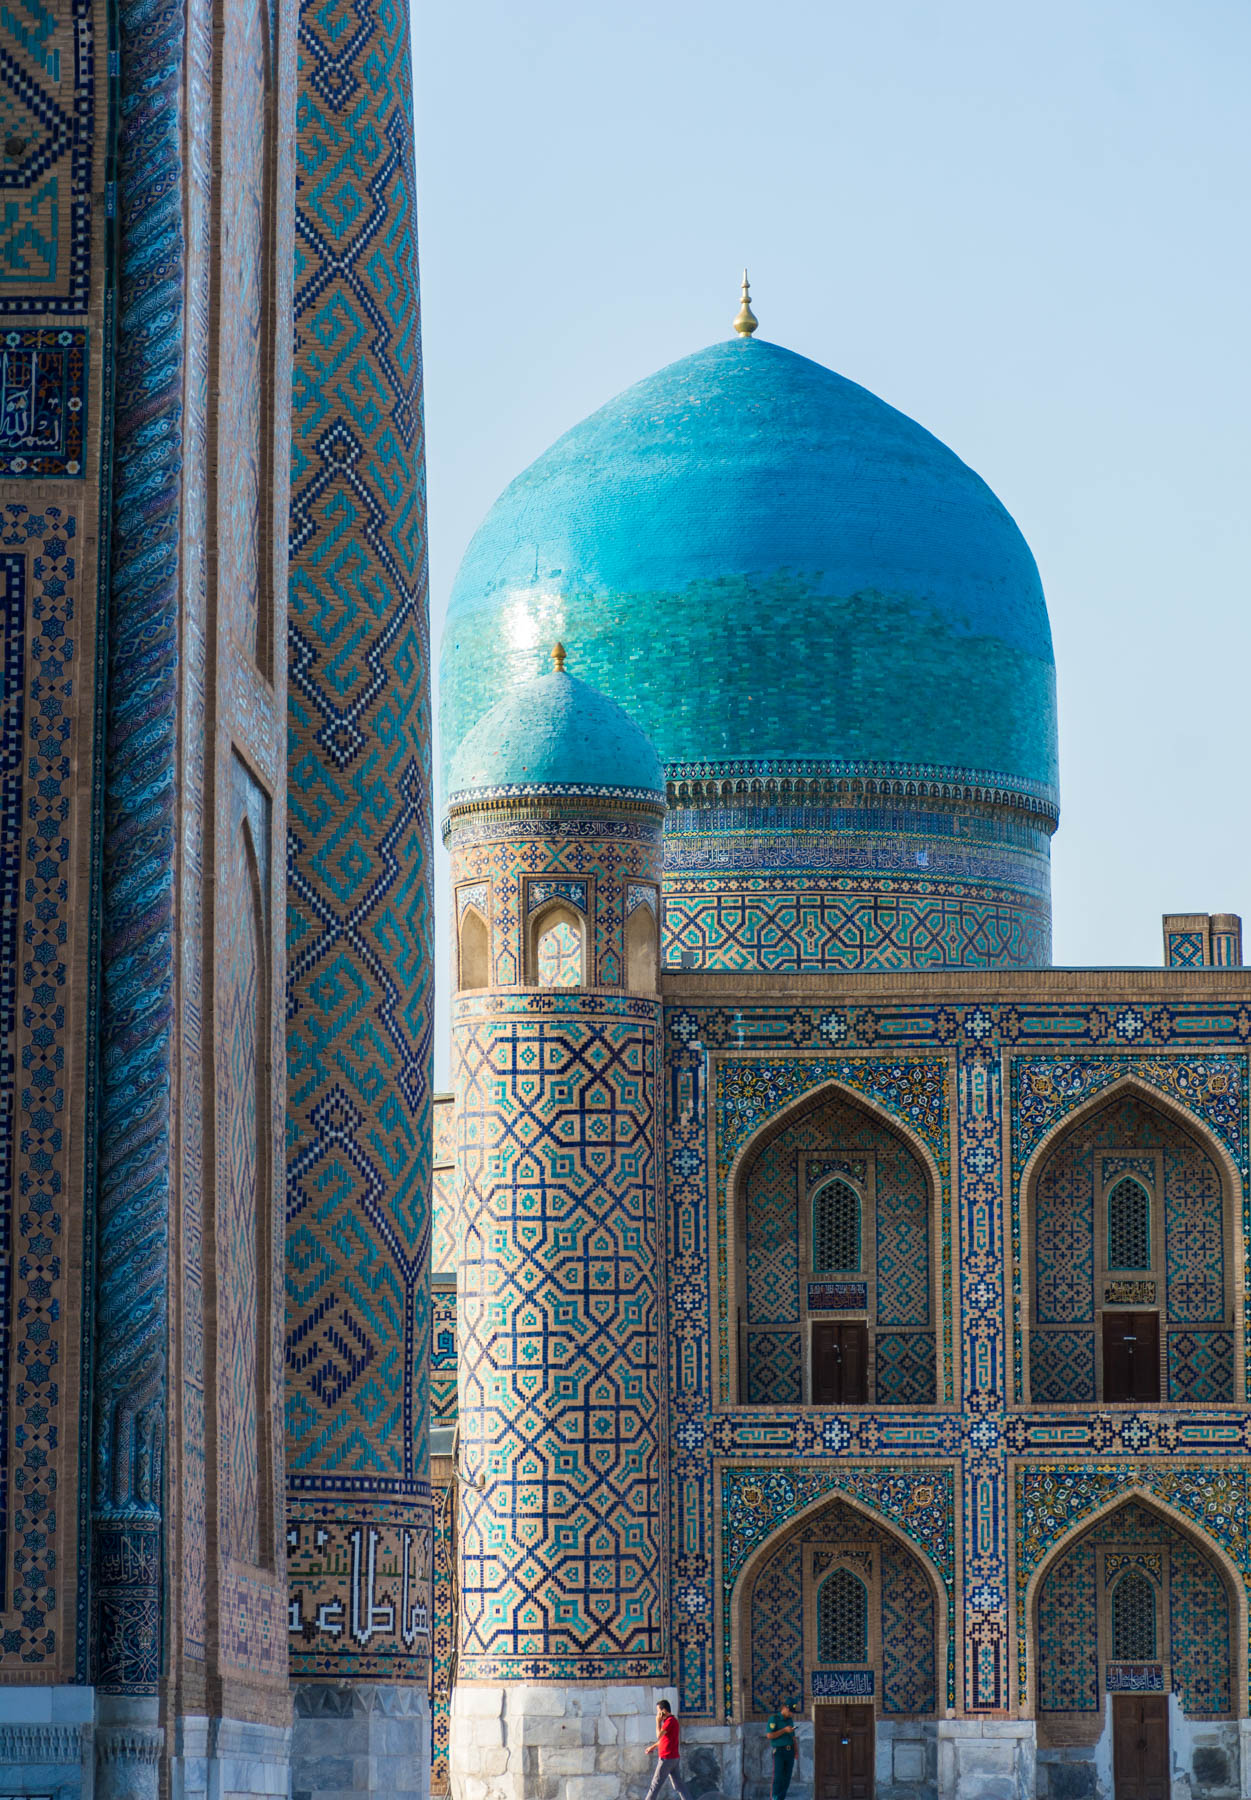 The Registan in Samarkand with an Uzbek guard walking around - Lost With Purpose